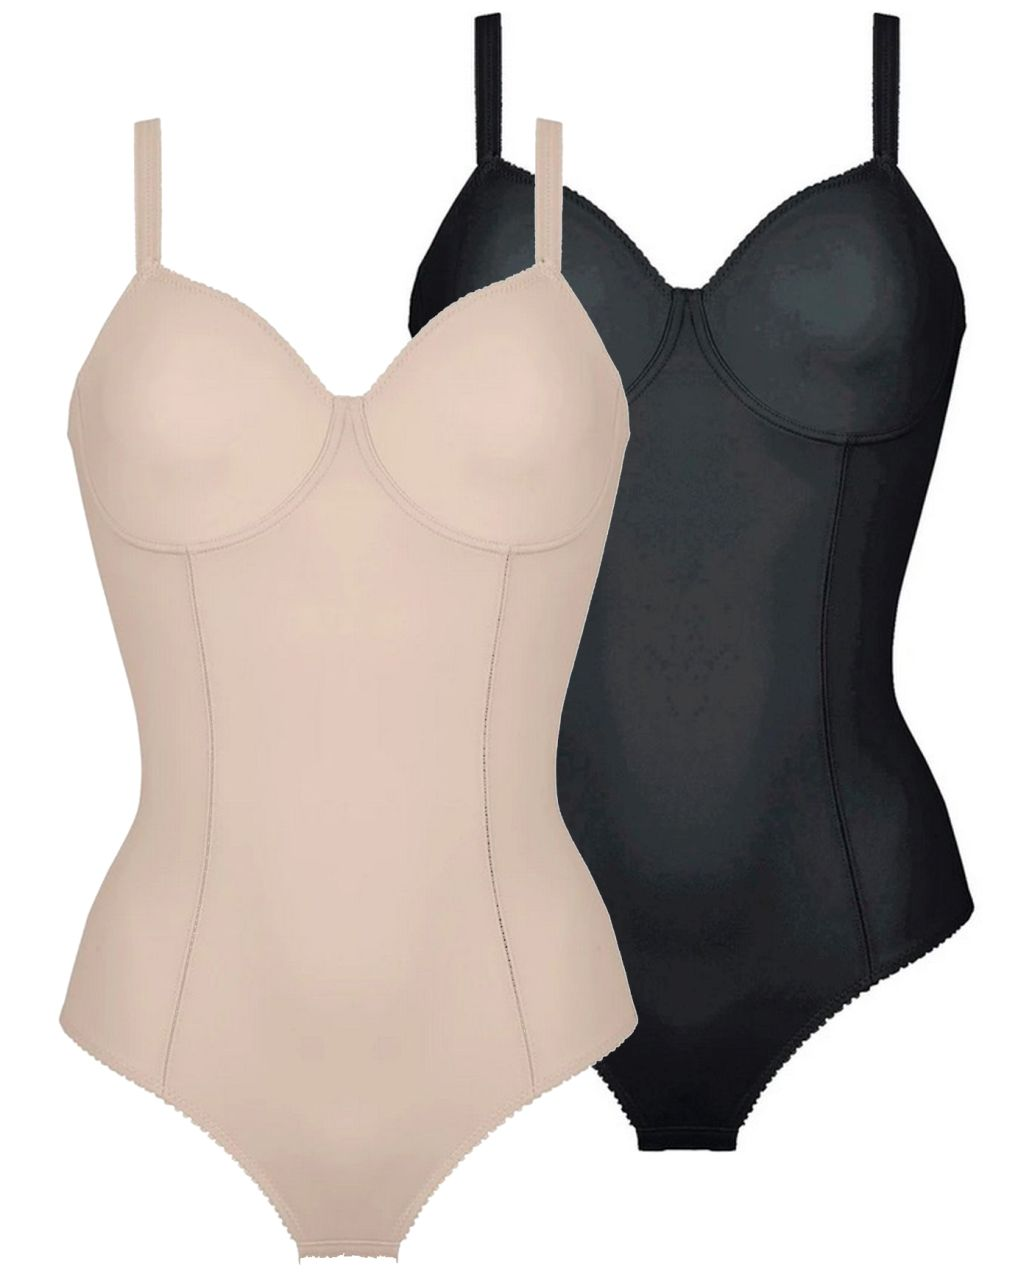 Naturana Solution Shapewear 3260 Bügel-Body mit Bügel haut schwarz 75 - 95 B C D